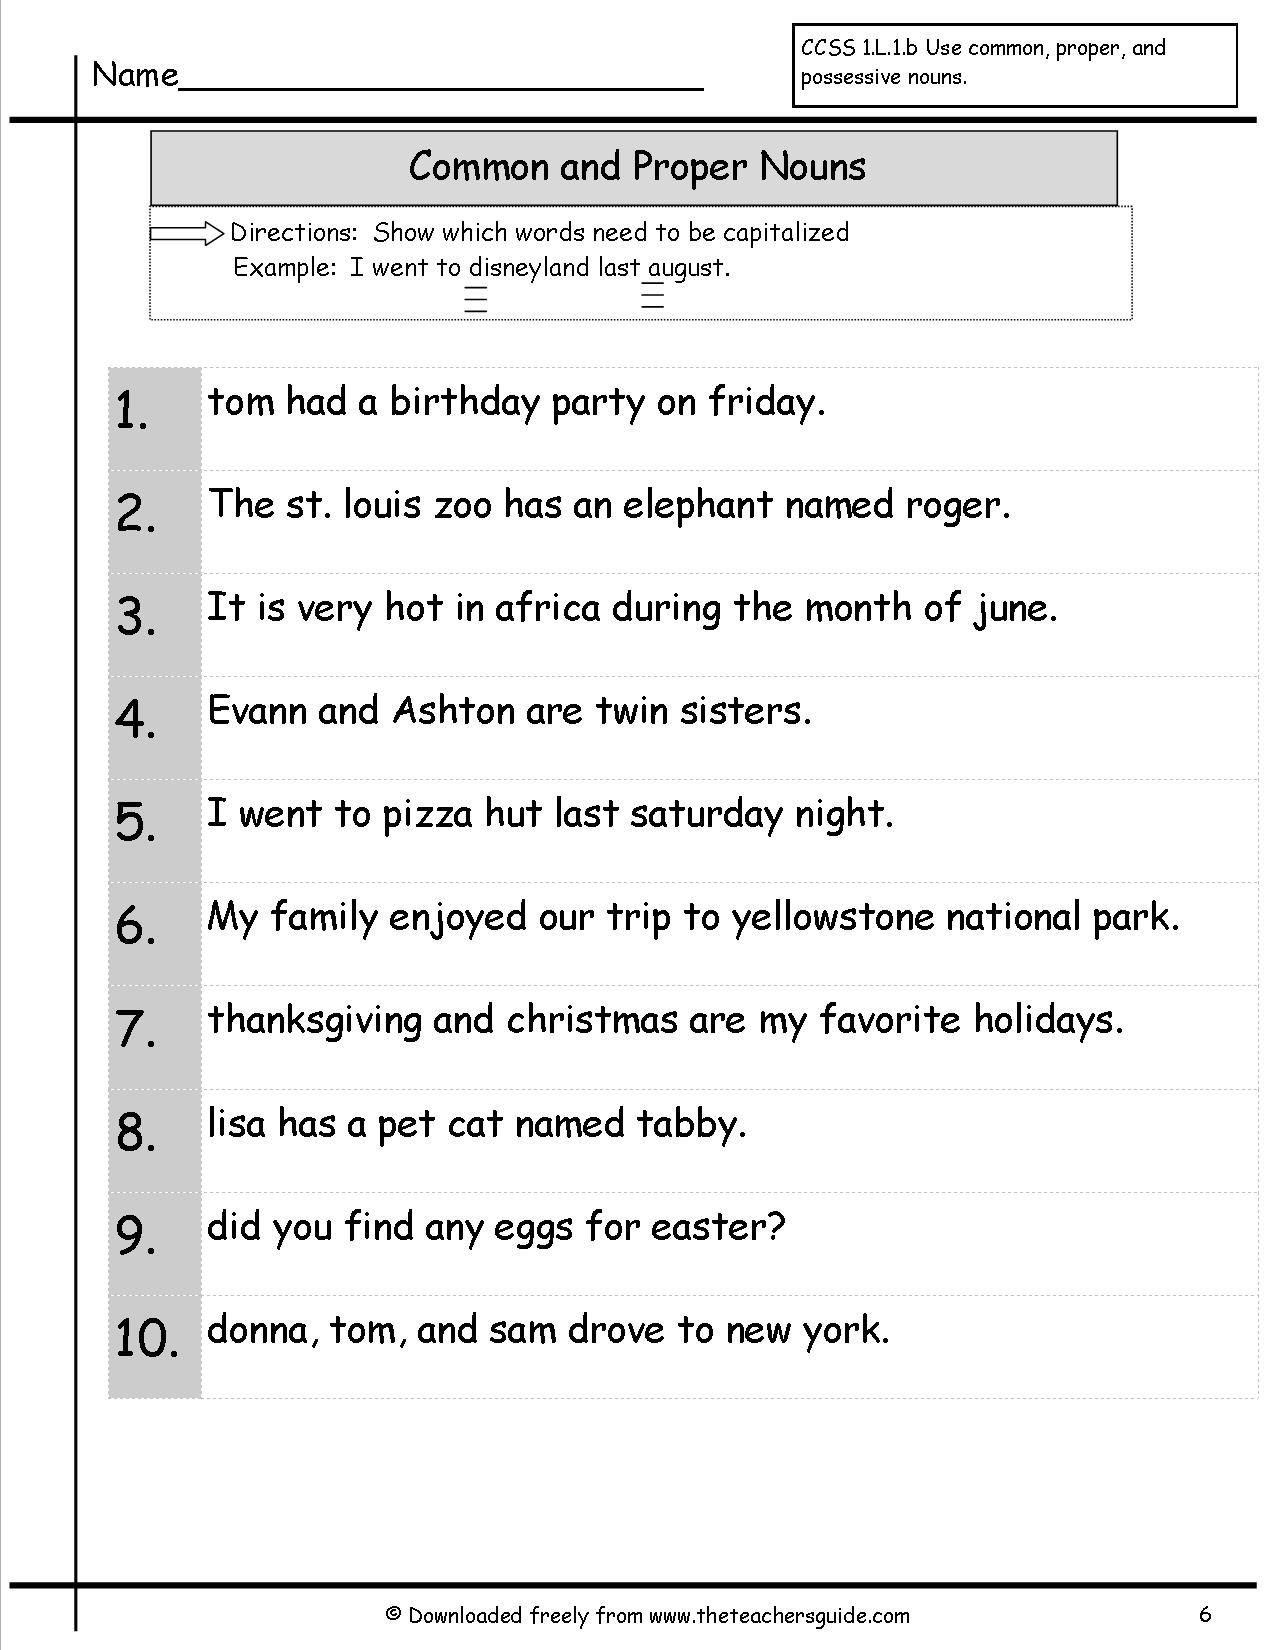 Pronoun Worksheet for 2nd Grade Capitalise Mon Proper Nouns with Images